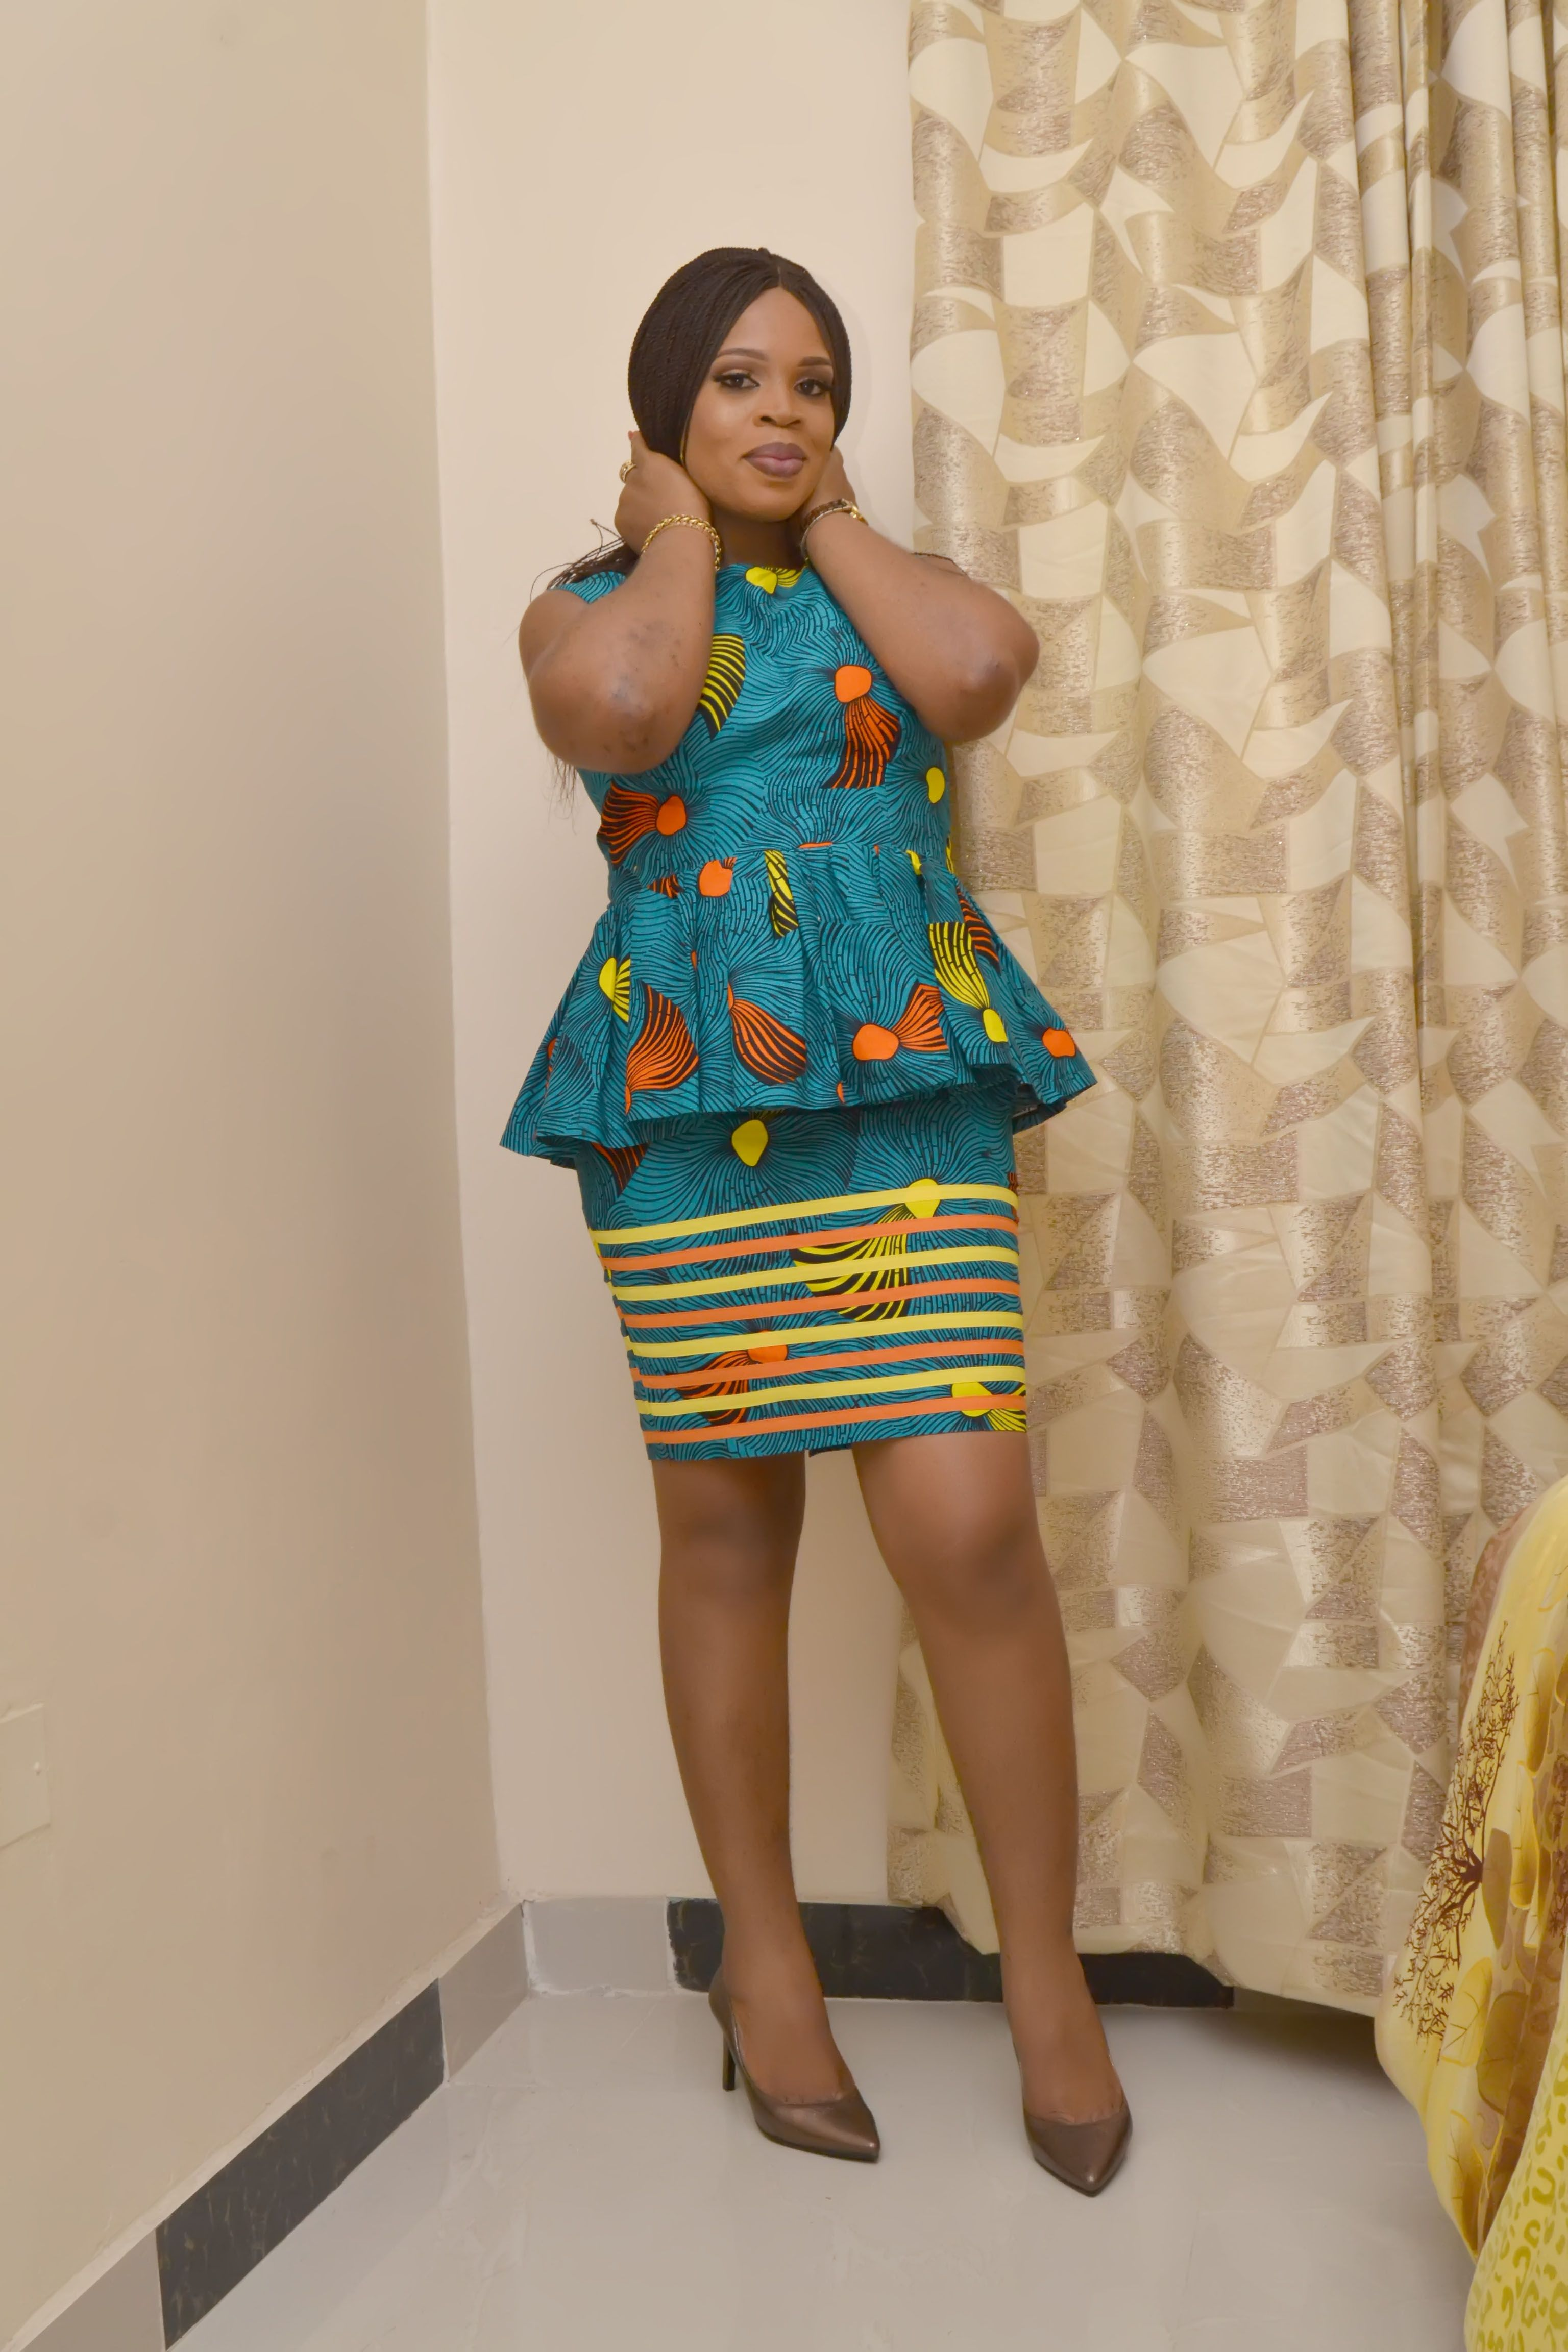 a9c2460f11 GlamzByAma Skirt & Blouse Set, African Gathered Blouse and Short Skirt,  African Style, Turquoise Ankara Co-ord Set, Stripe Designs